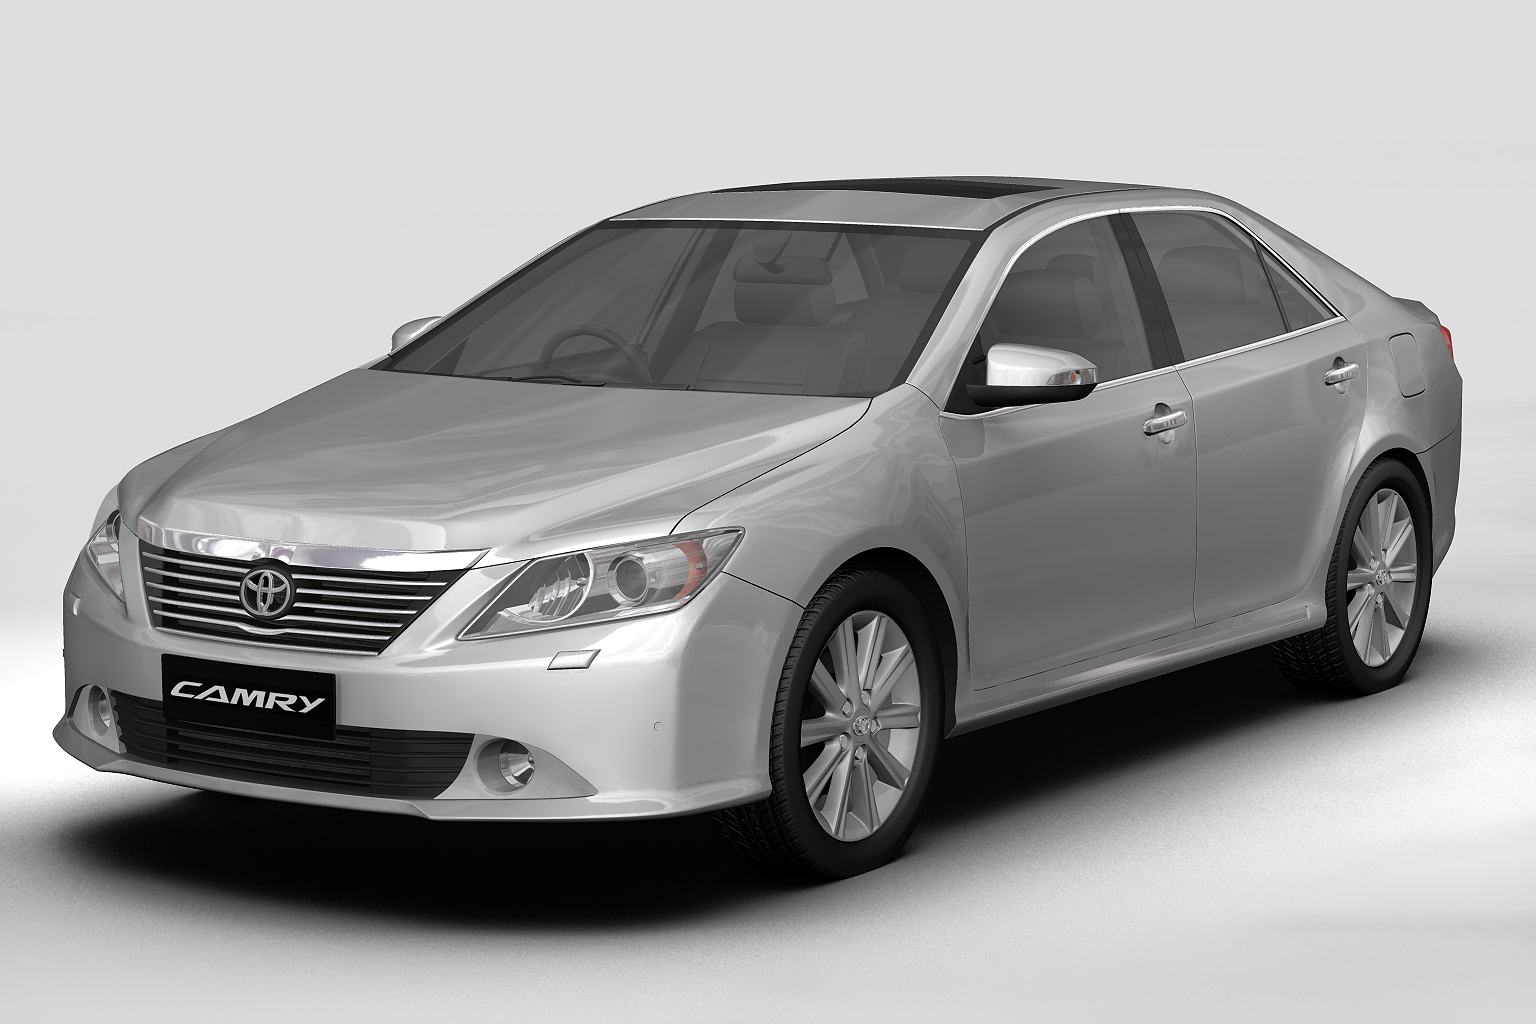 2012 toyota camry (asian) 3d model 3ds max fbx c4d lwo hrc xsi obj 136193